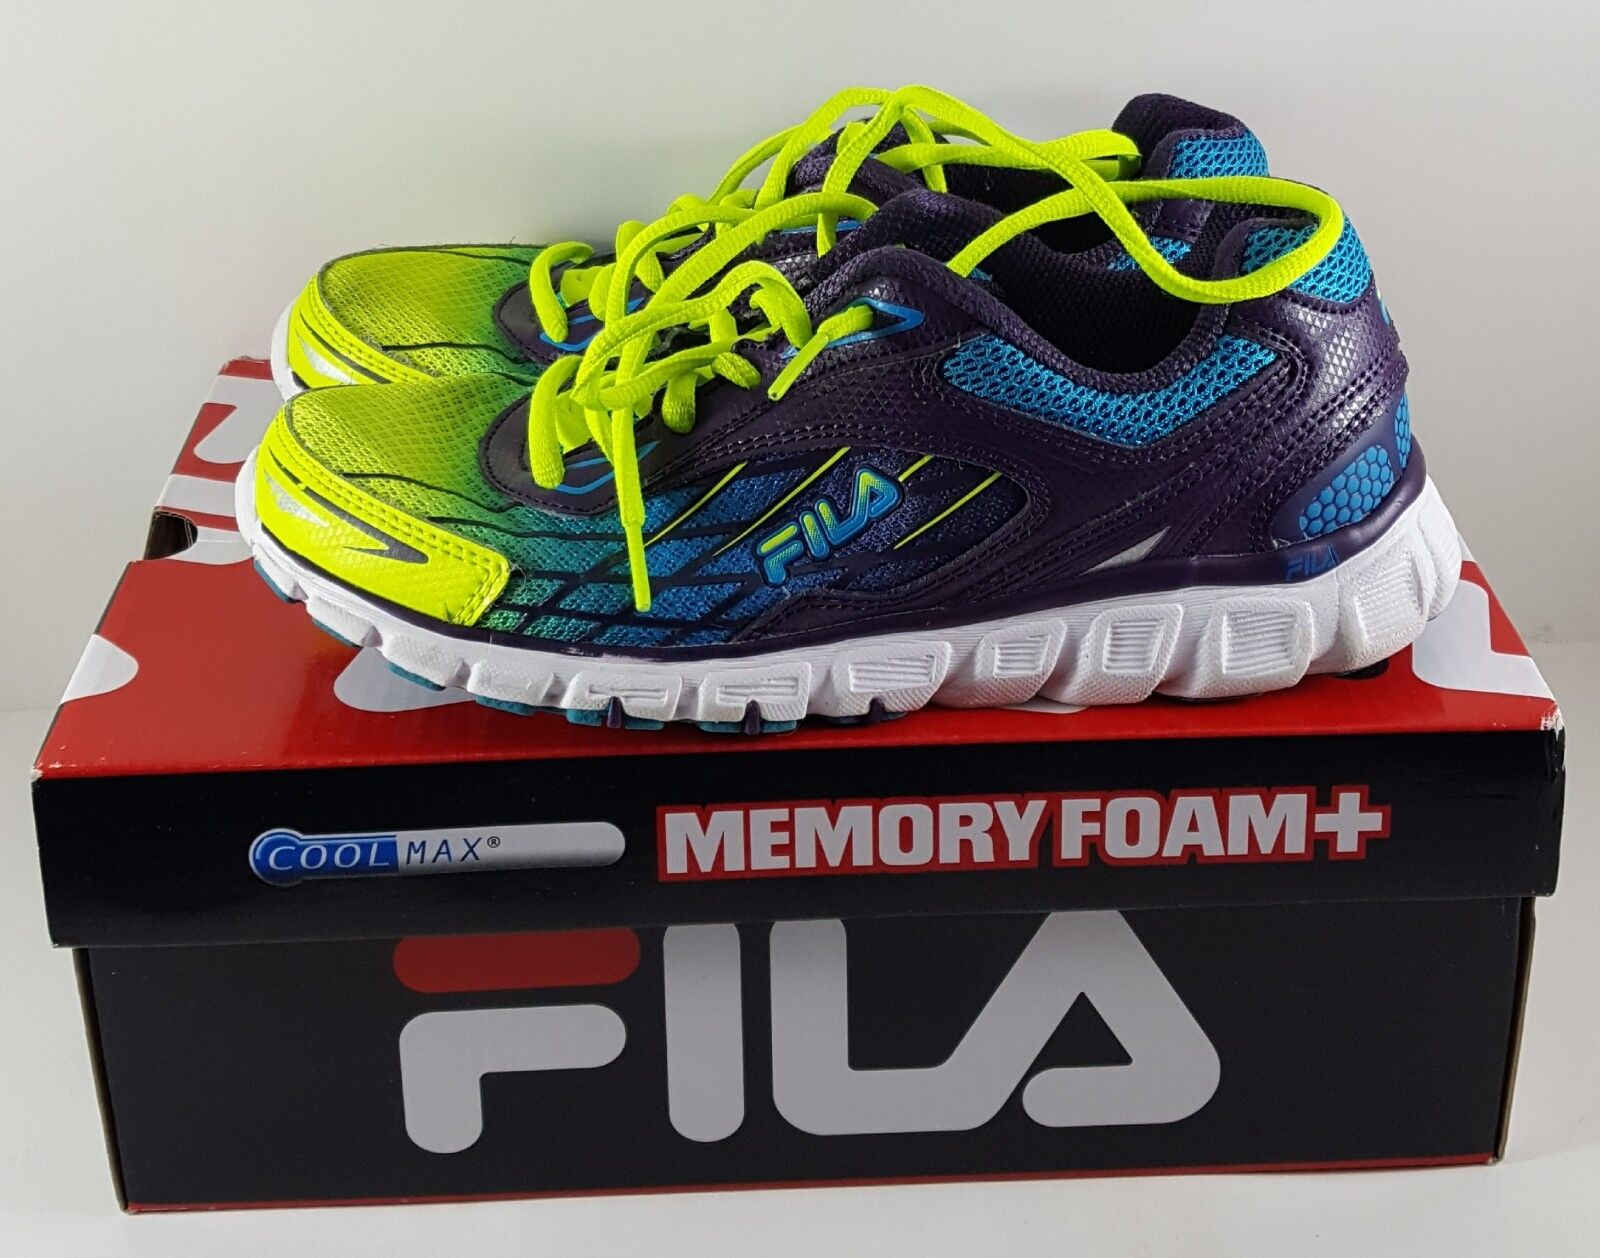 FILA Cool Max Memory Foam Imperative Women's Athletic Running Shoes Comfortable Cheap and beautiful fashion